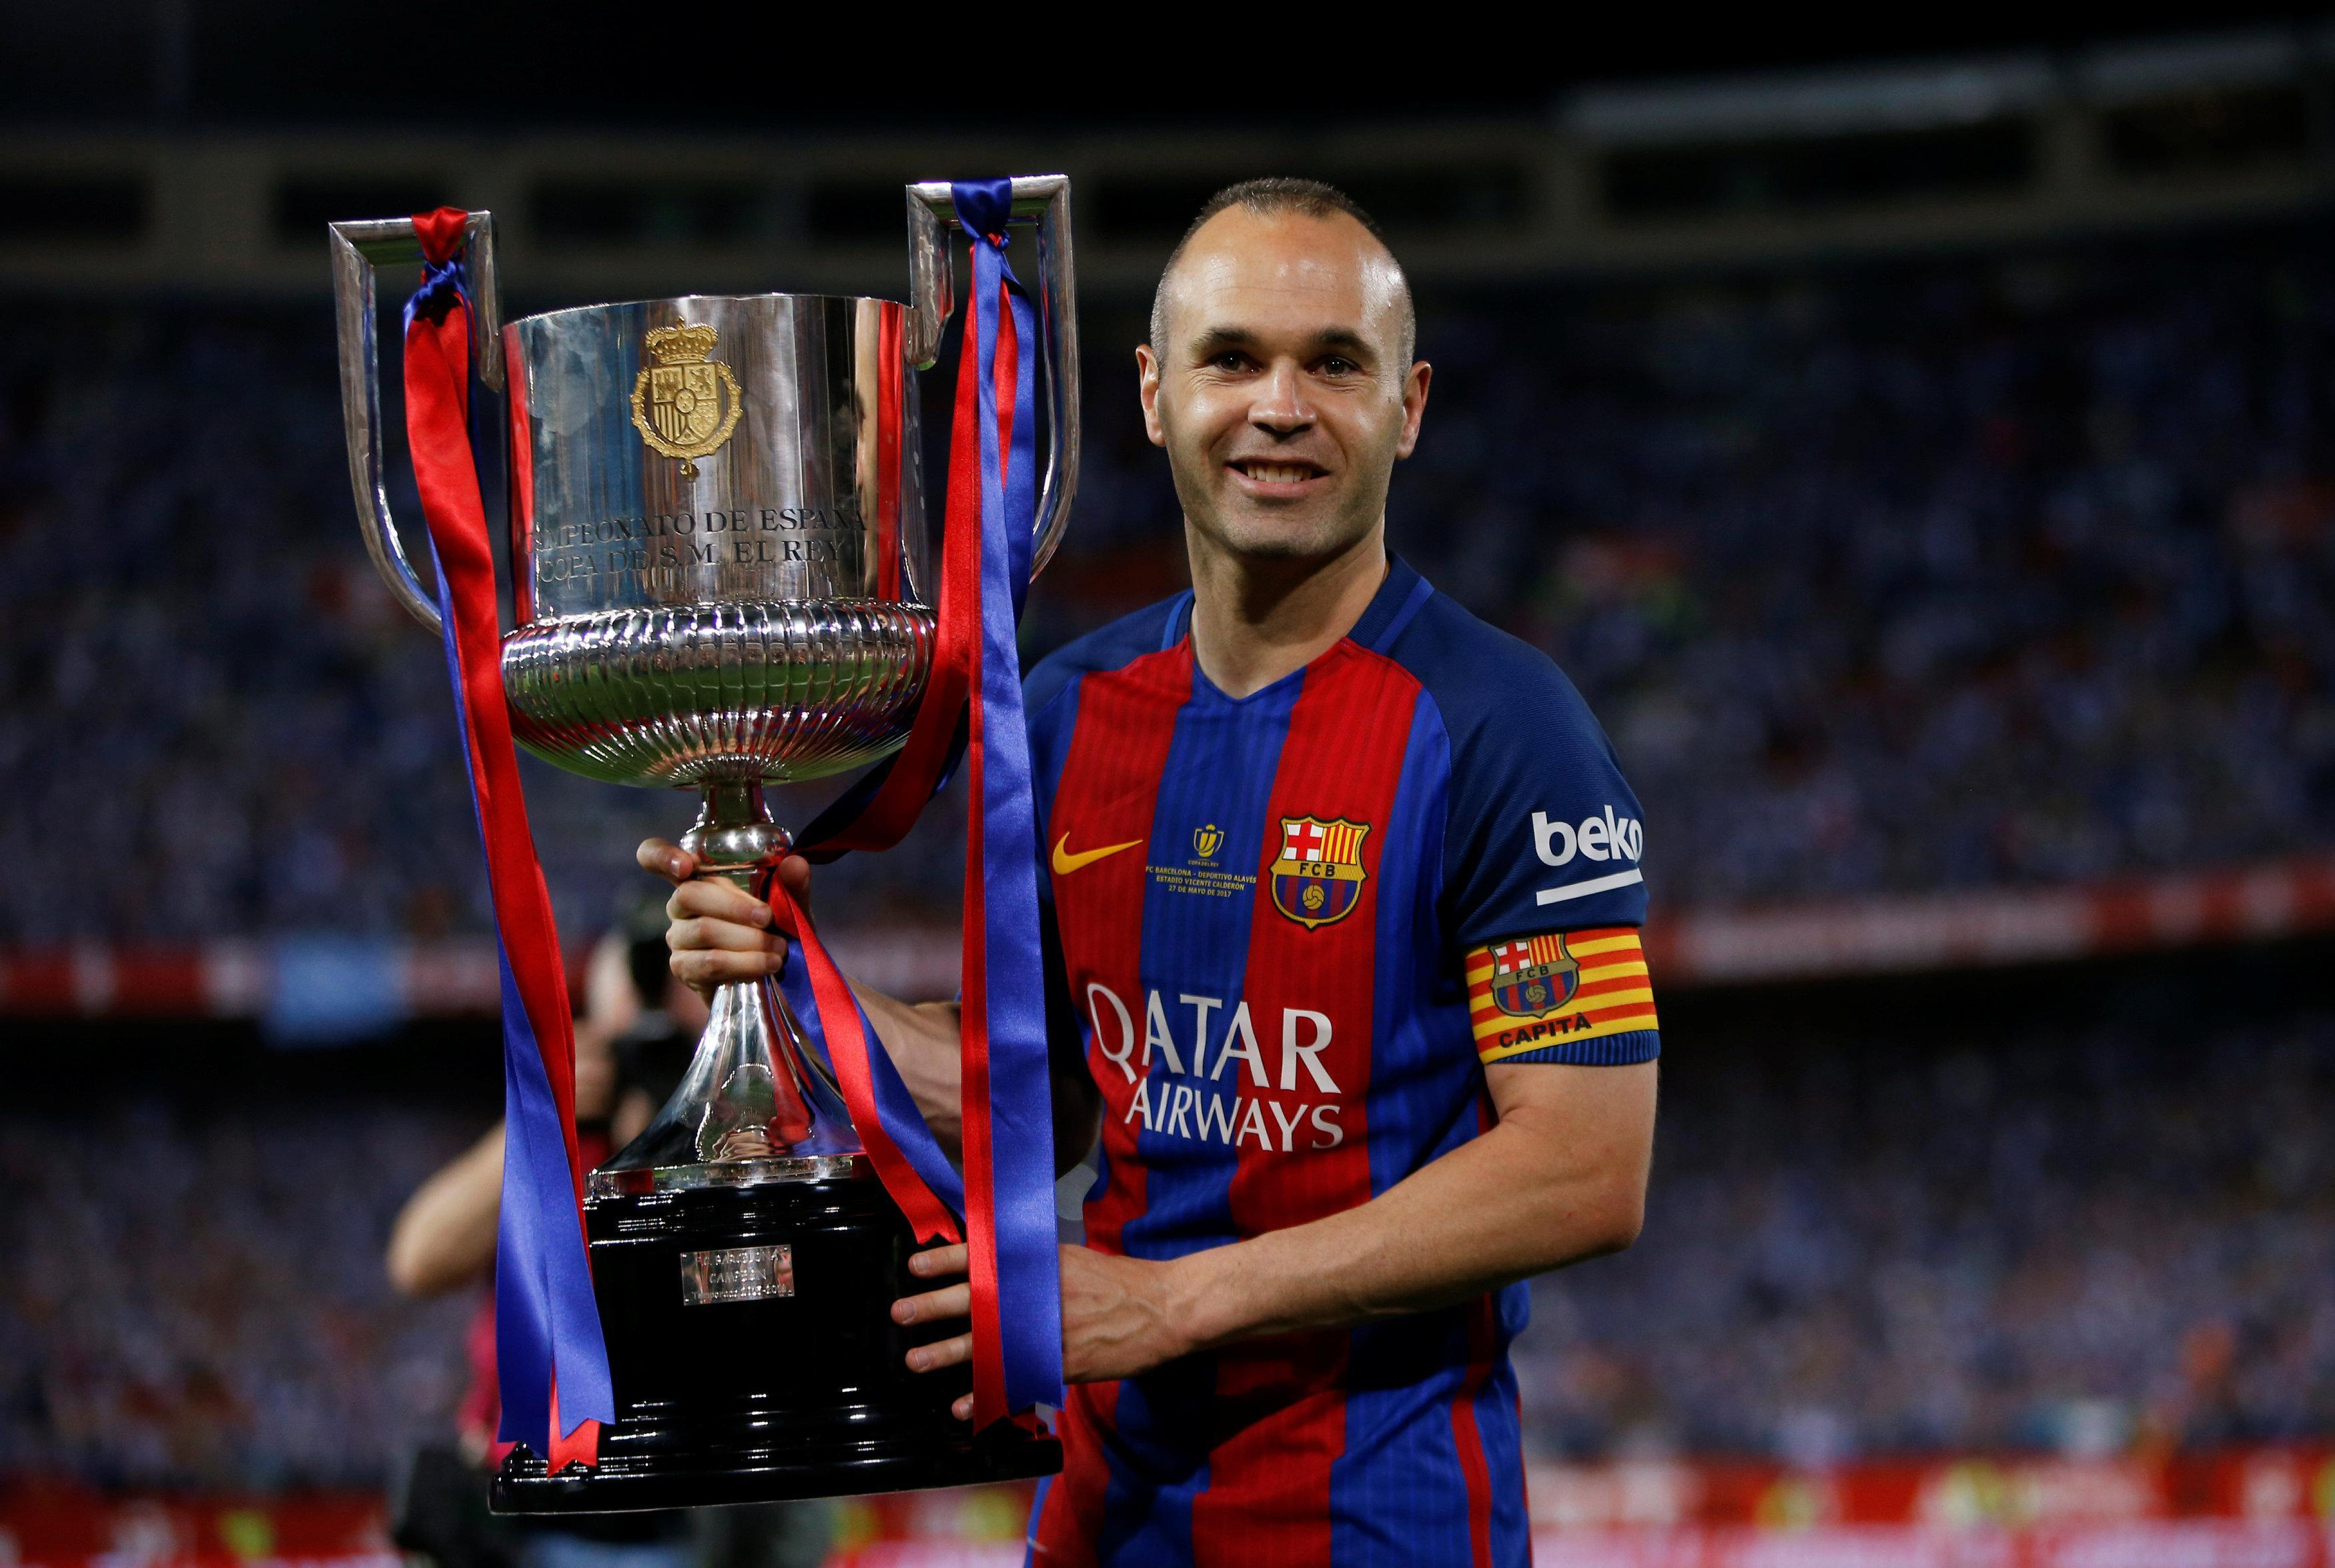 Andres Iniesta has helped Barcelona to win countless honours during his time with the Catalans